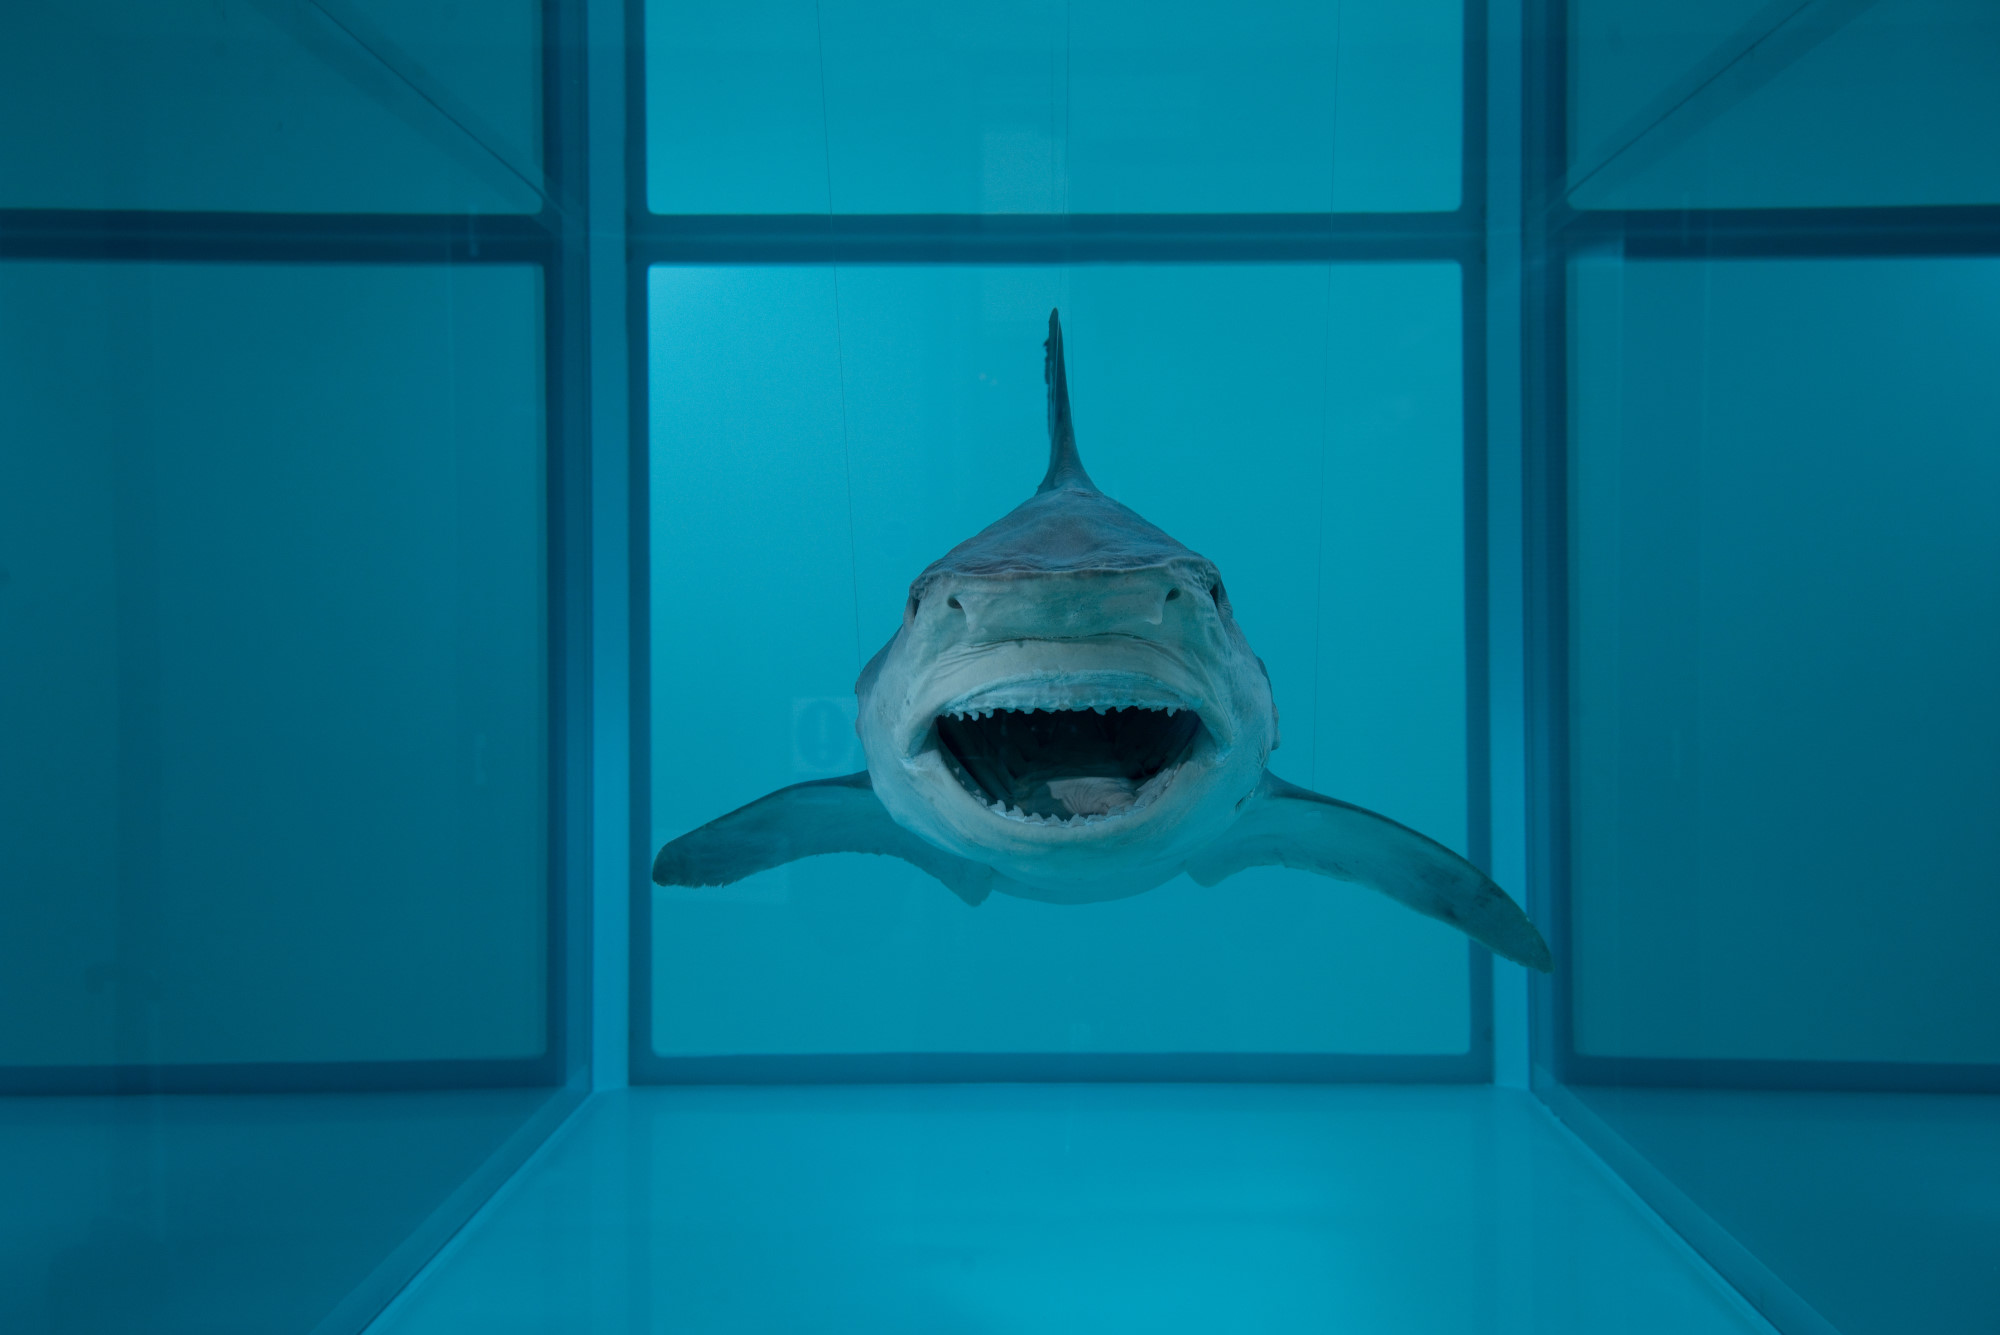 Heaven by Damien Hirst